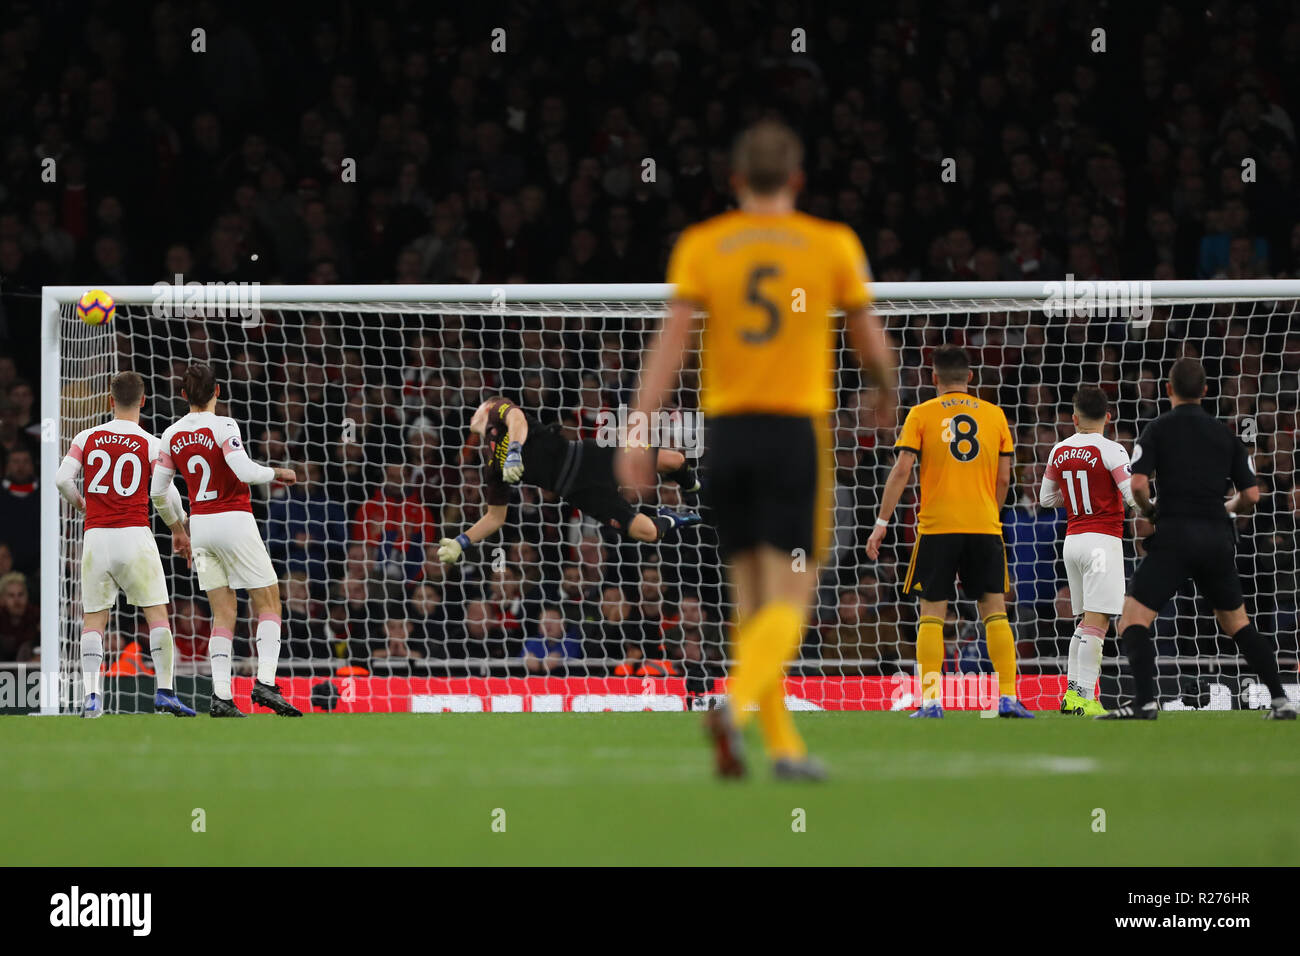 Morgan Gibbs-White of Wolverhampton Wanderers bounces a shot off the inside of the goal from with Bernd Leno of Arsenal beaten - Arsenal v Wolverhampt - Stock Image